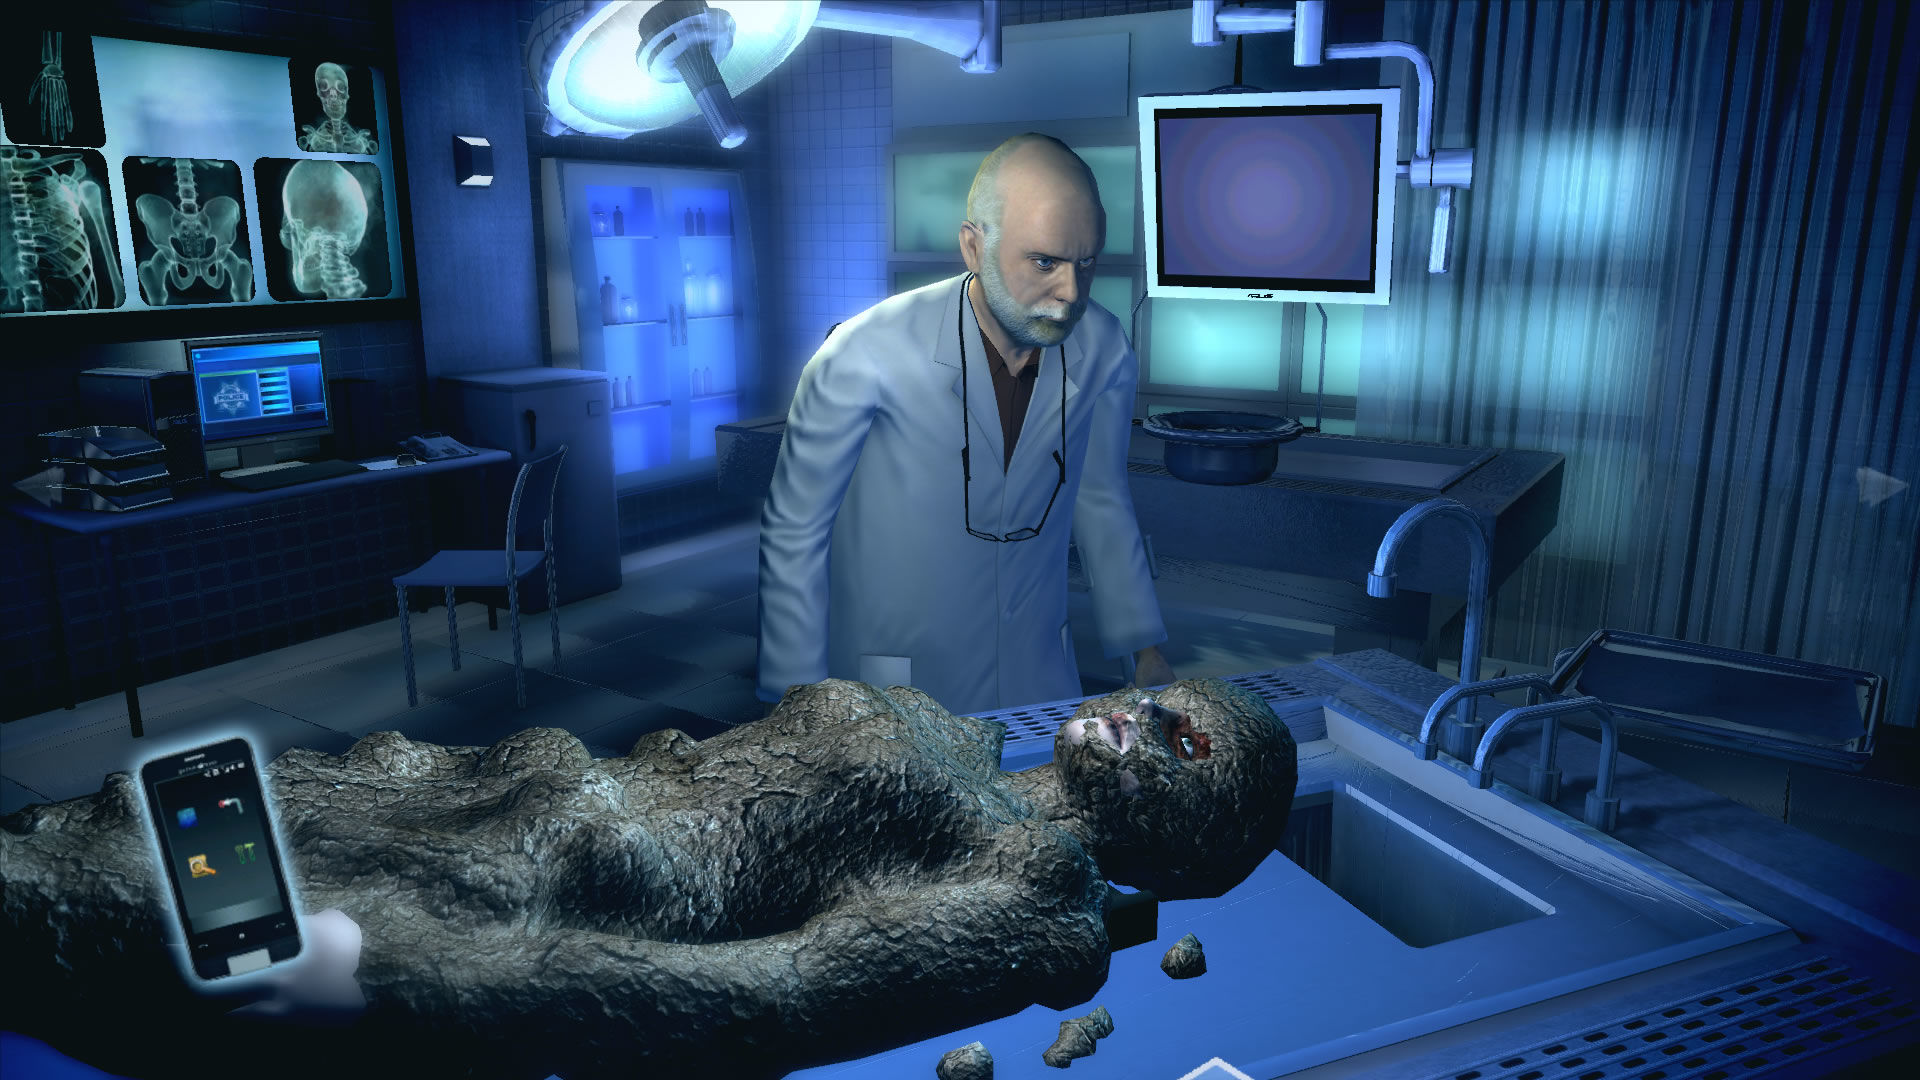 CSI: Crime Scene Investigation - Fatal Conspiracy  Windows ...and finding a corpse. Here together with Dr. Robbins in the morgue